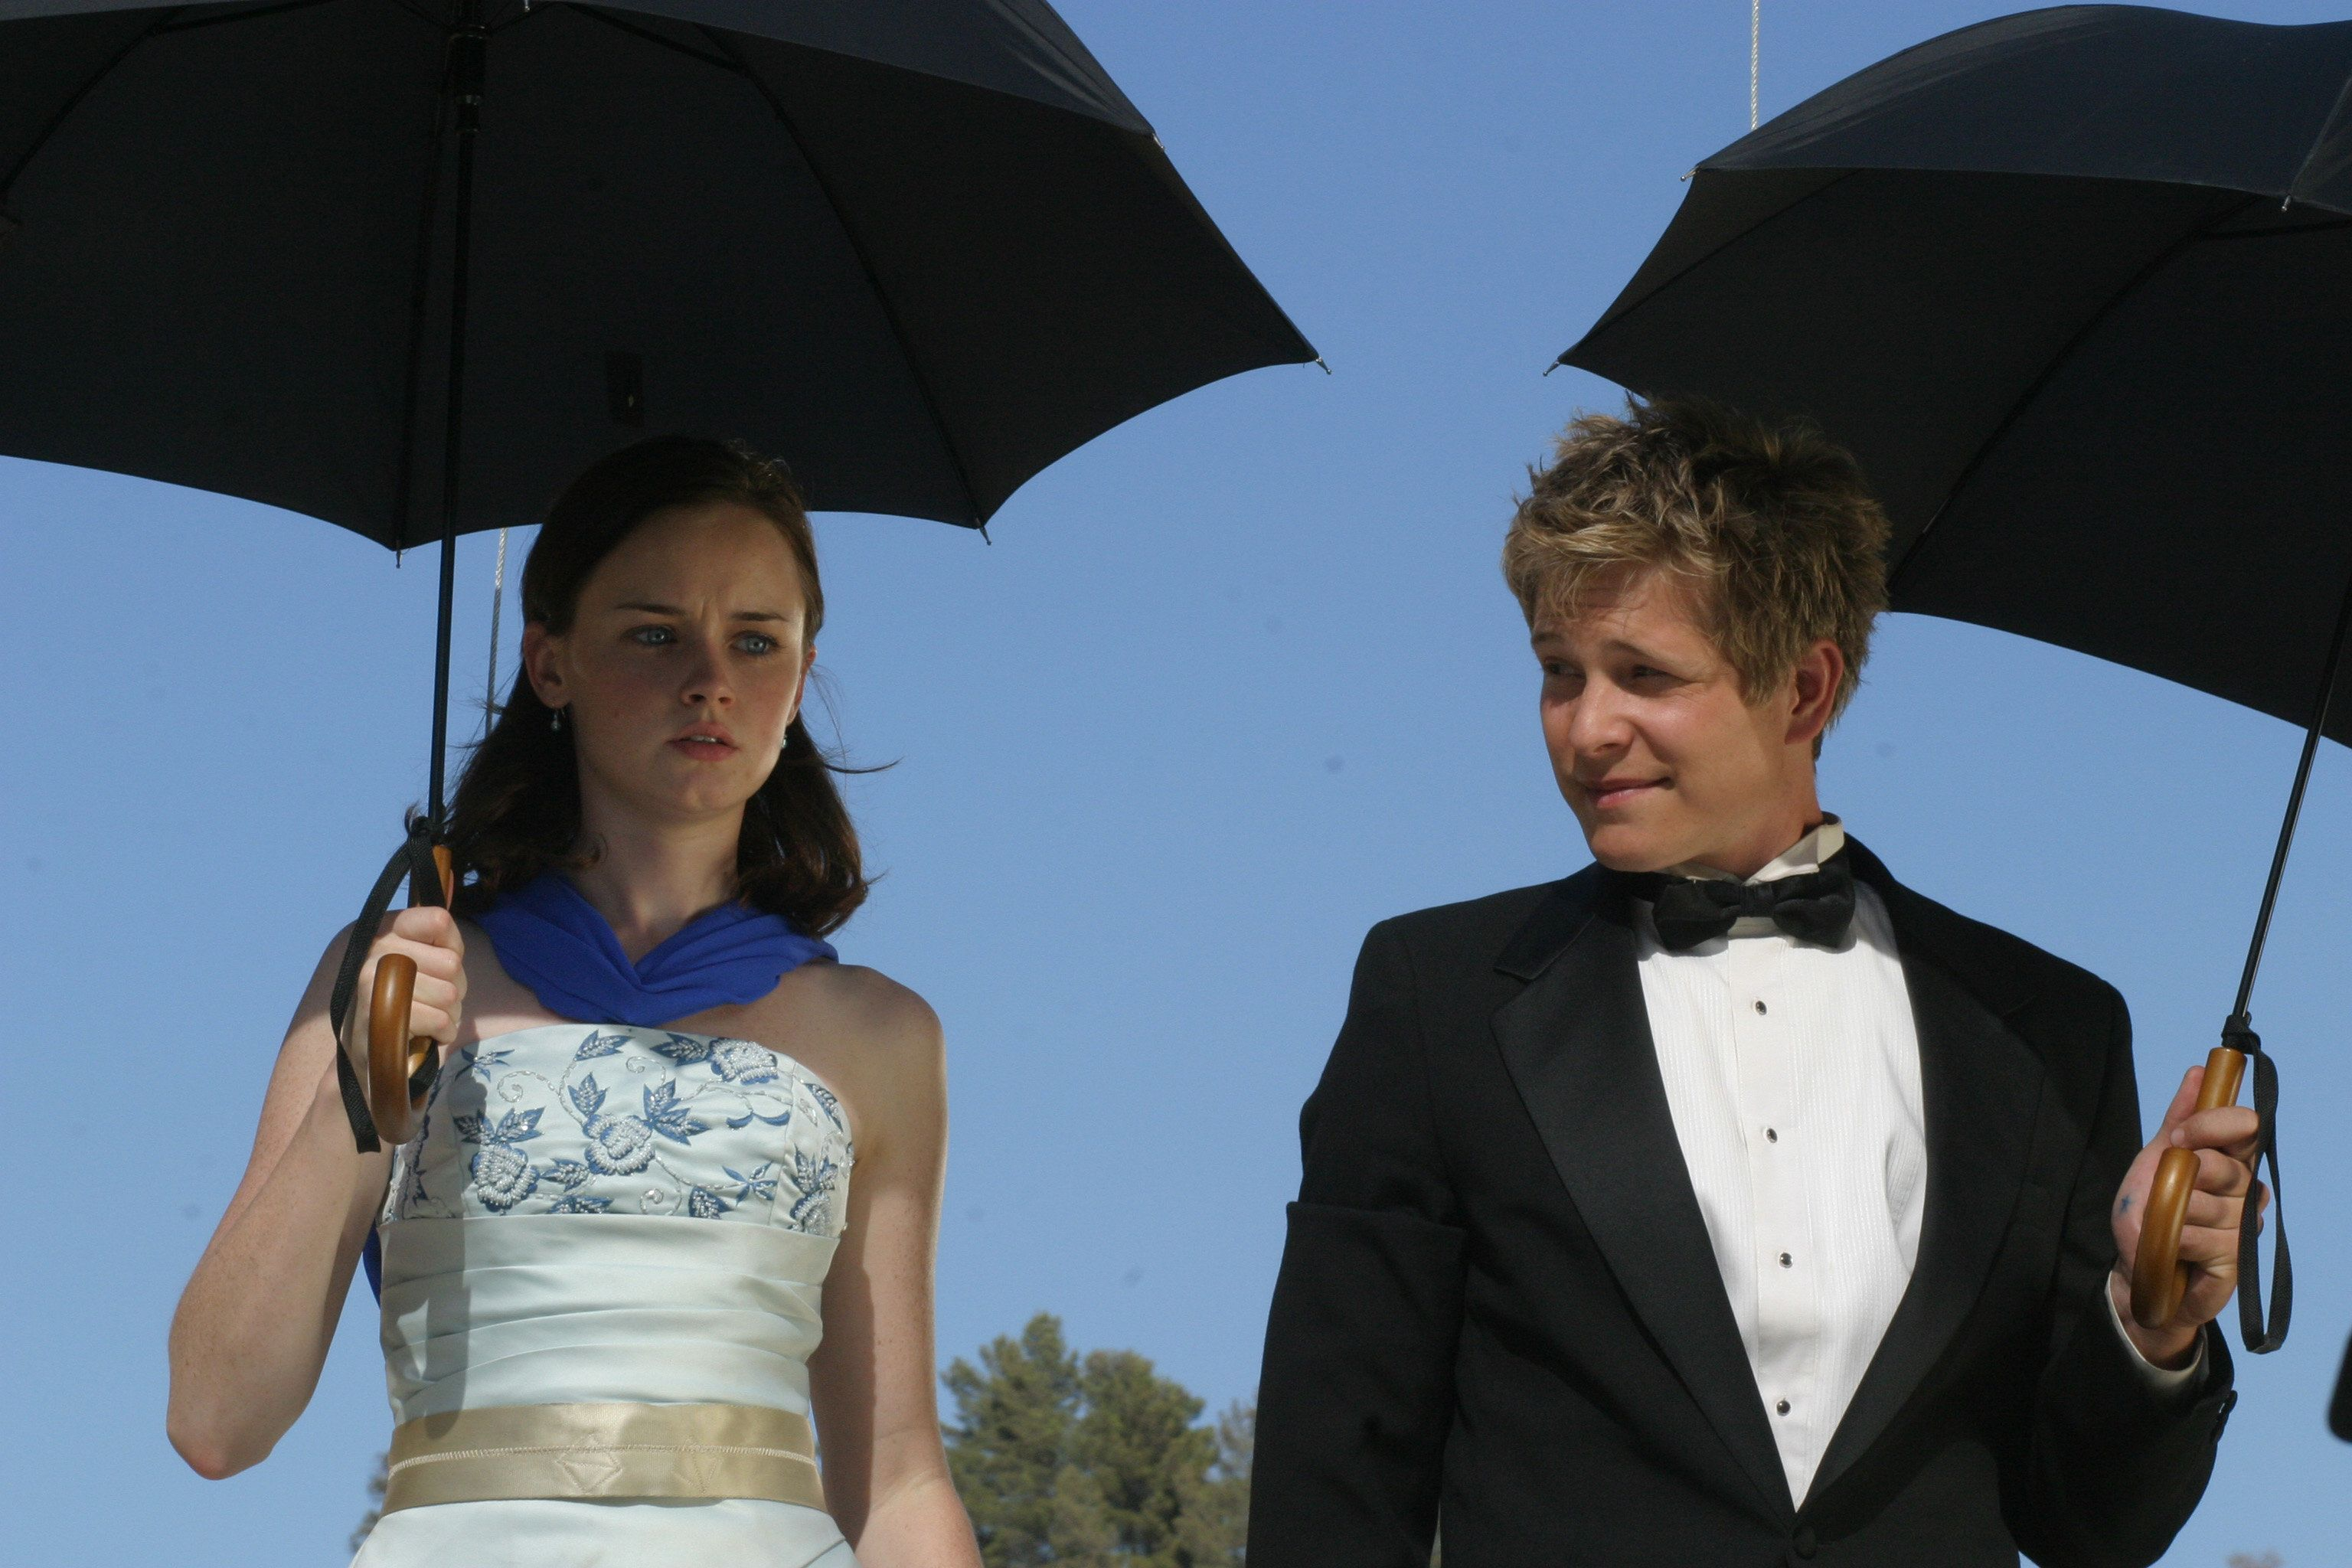 UNSPECIFIED - OCTOBER 07:  Medium shot of Alexis Bledel as Rory and Matt Czuchry as Logan holding umbrellas.  (Photo by Michael Ansell/Warner Bros./Getty Images)